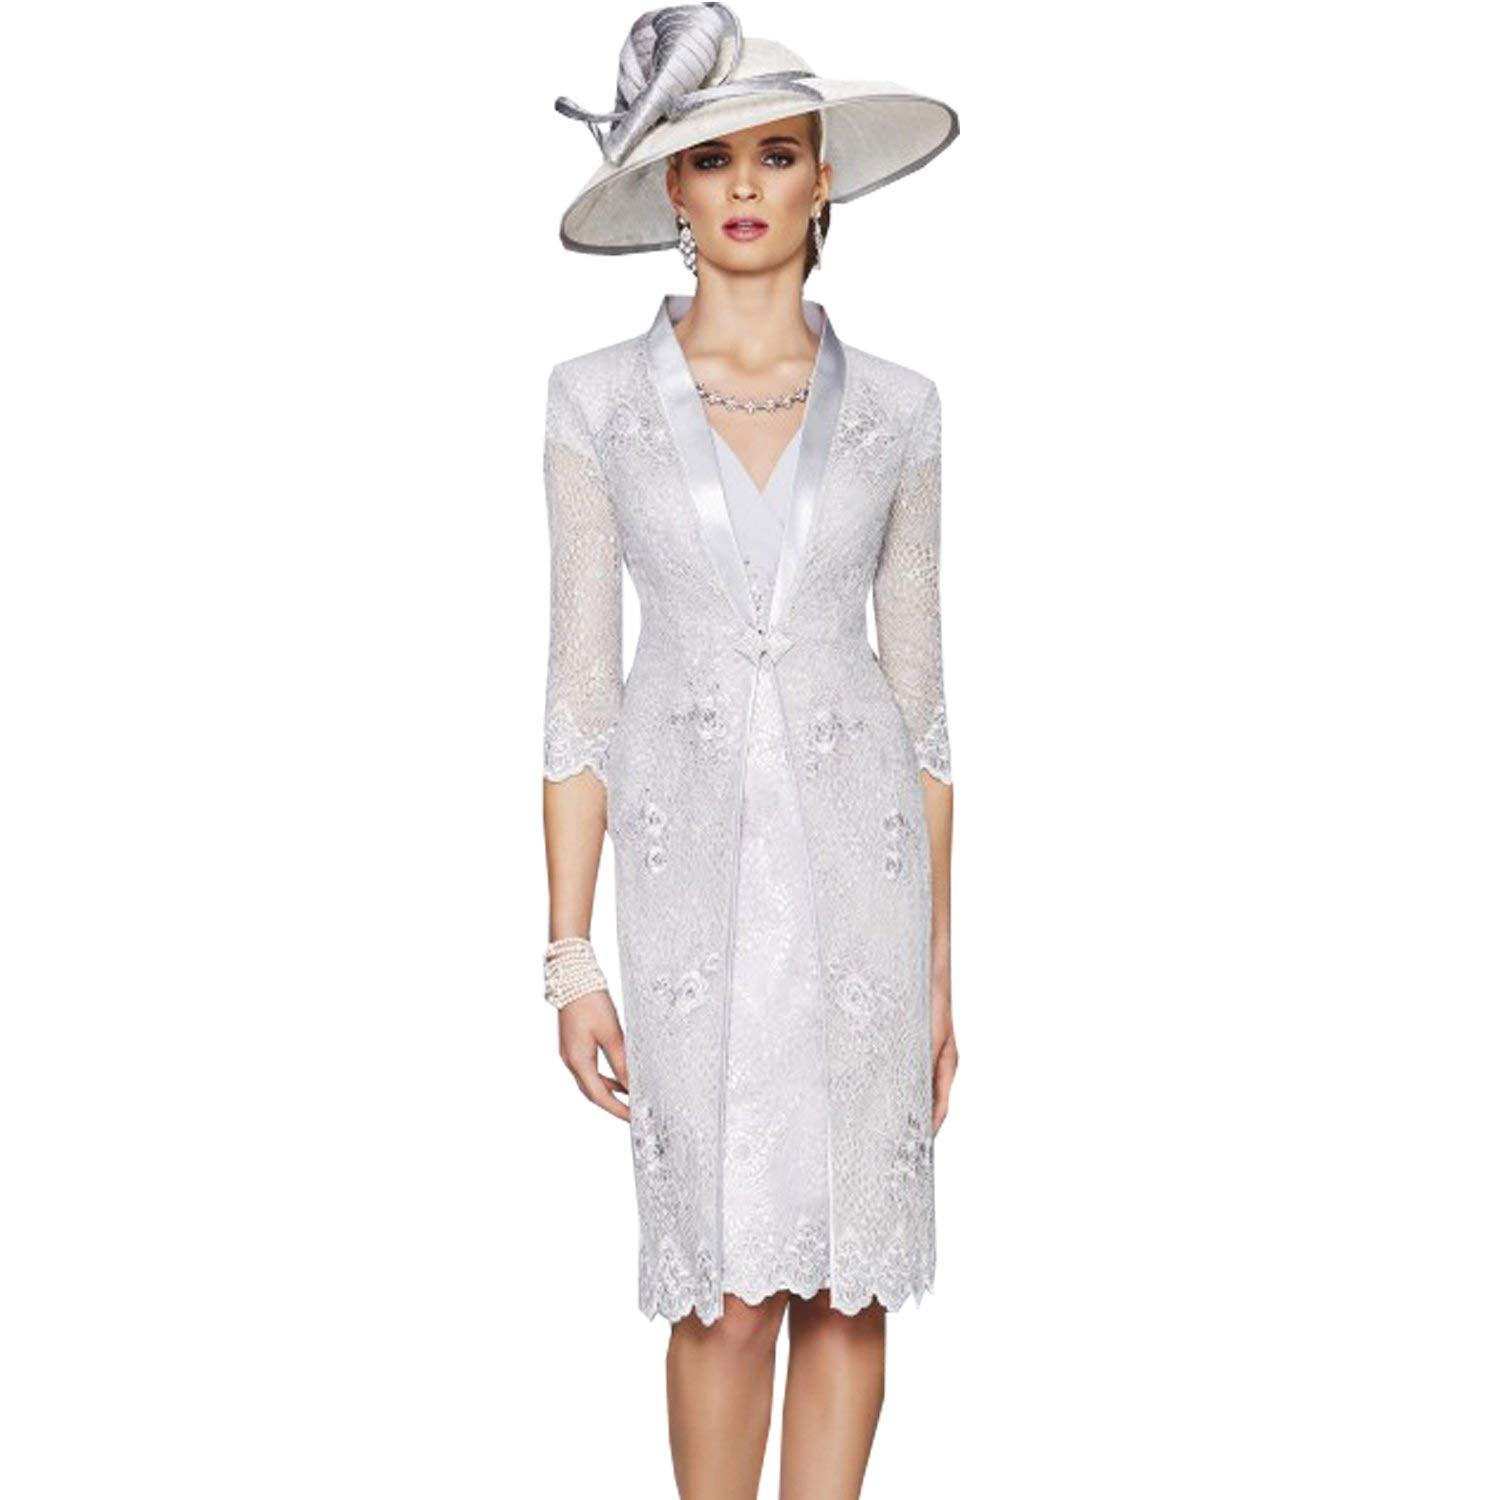 dressvip V-Neck Cap Sleeves Grey Chiffon Lace Sheath Mother of the Bride Dresses with Jacket